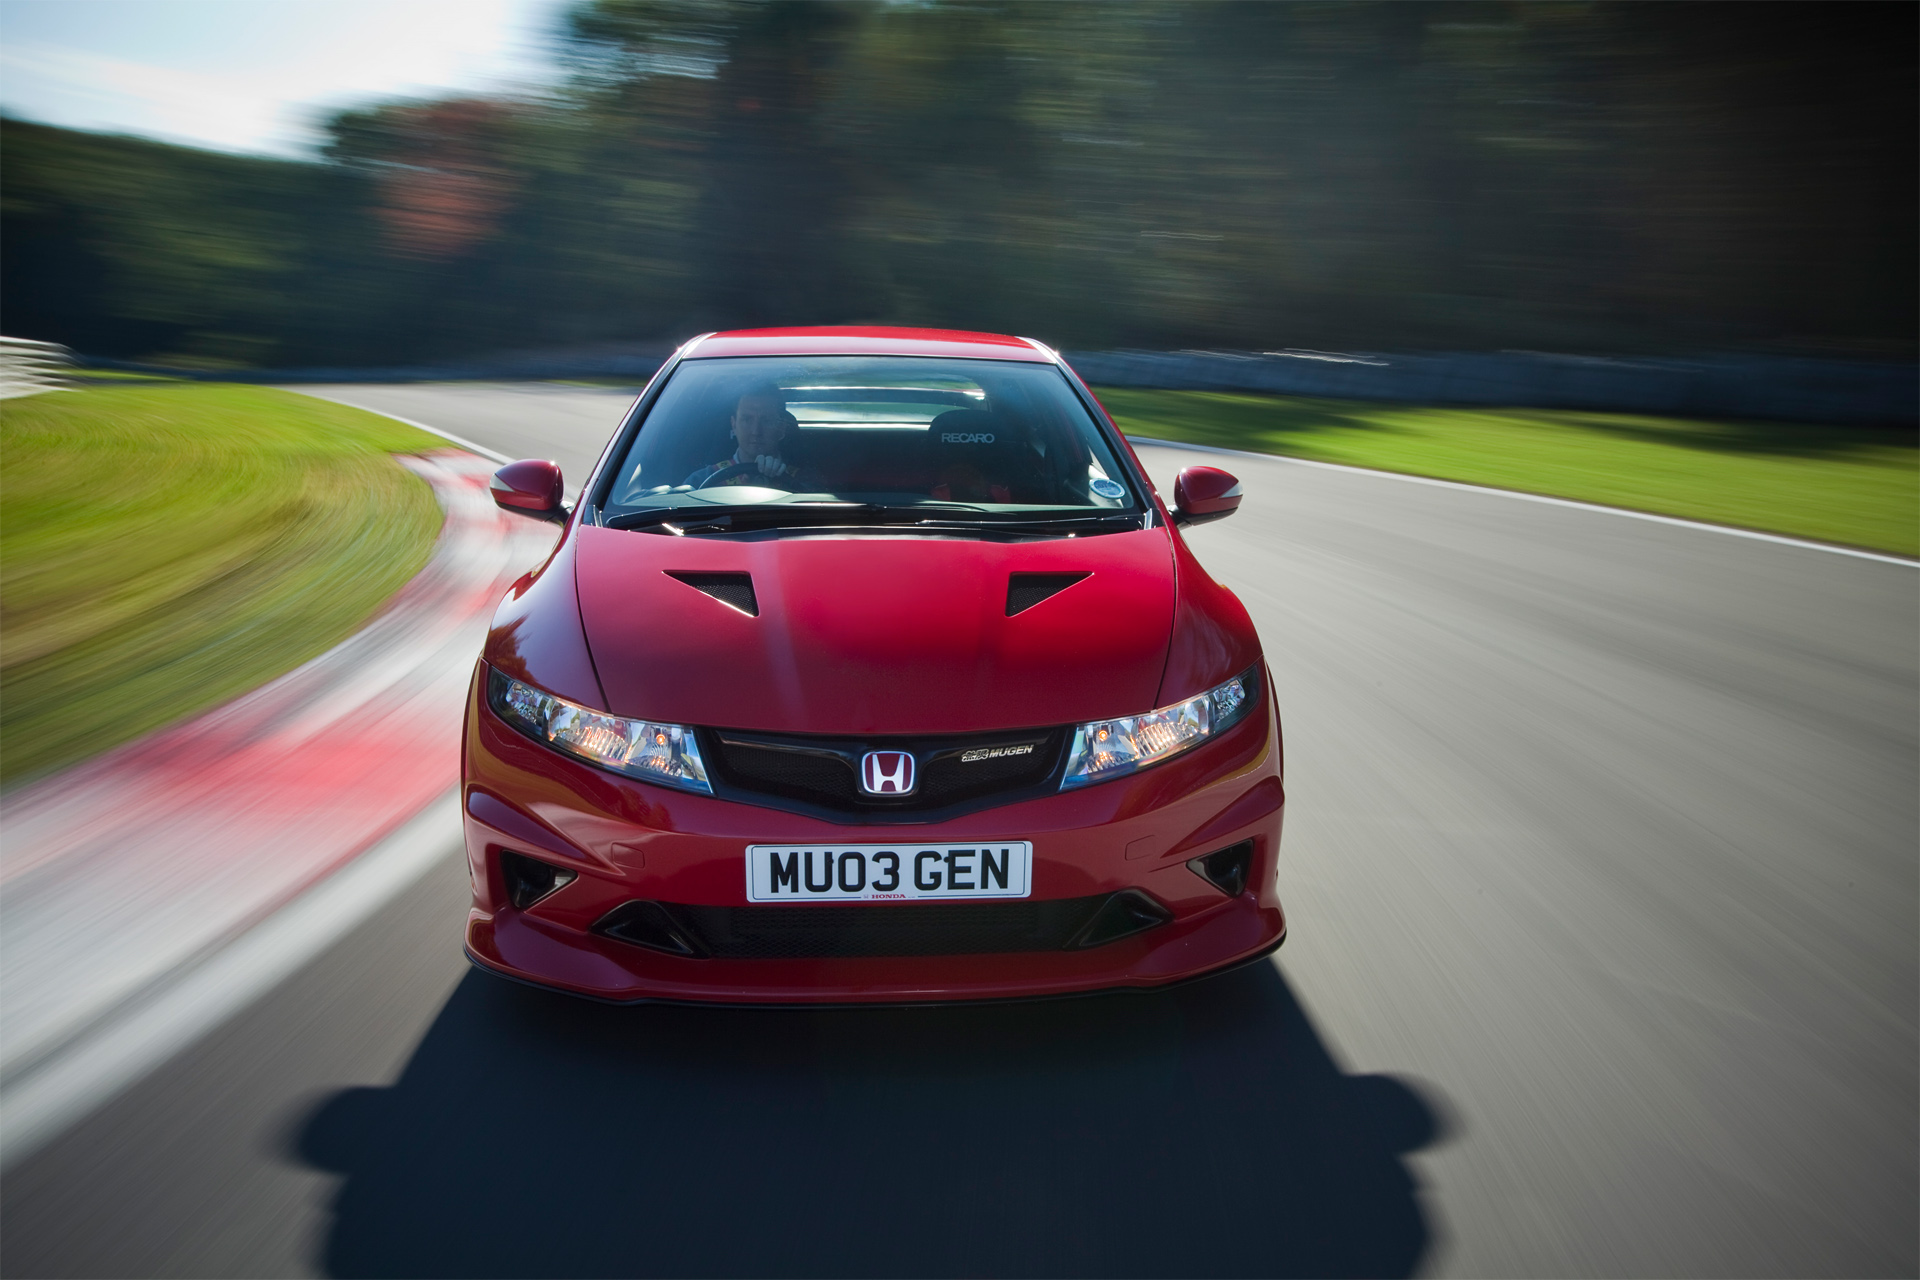 Mugen Honda Civic Type R Photos Photogallery With 15